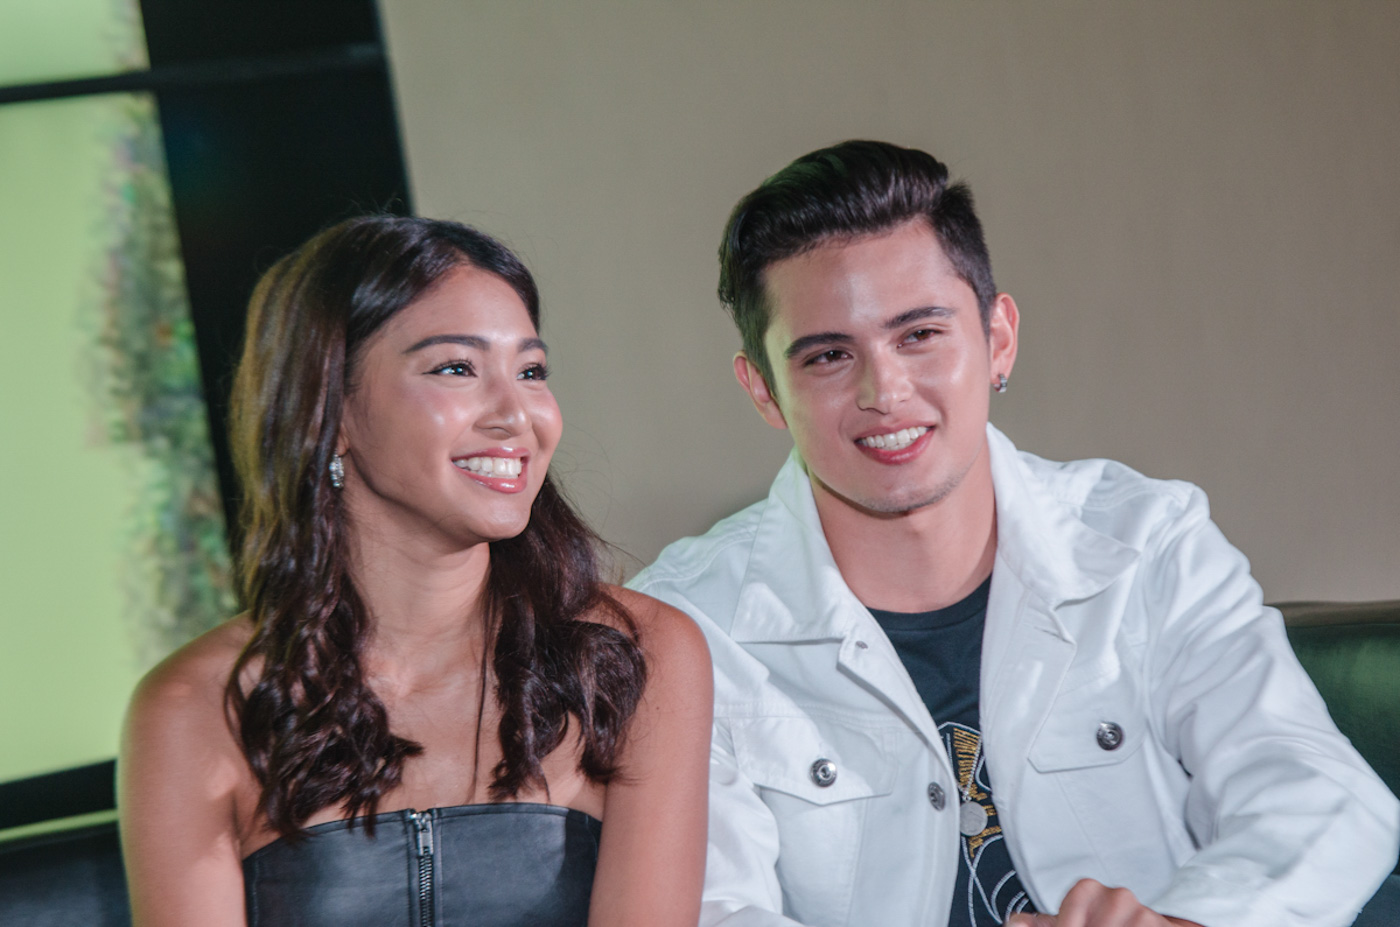 HAPPY COUPLE. Nadine Lustre and James Reid at a press conference in January 2018. File photo by Rob Reyes/Rappler